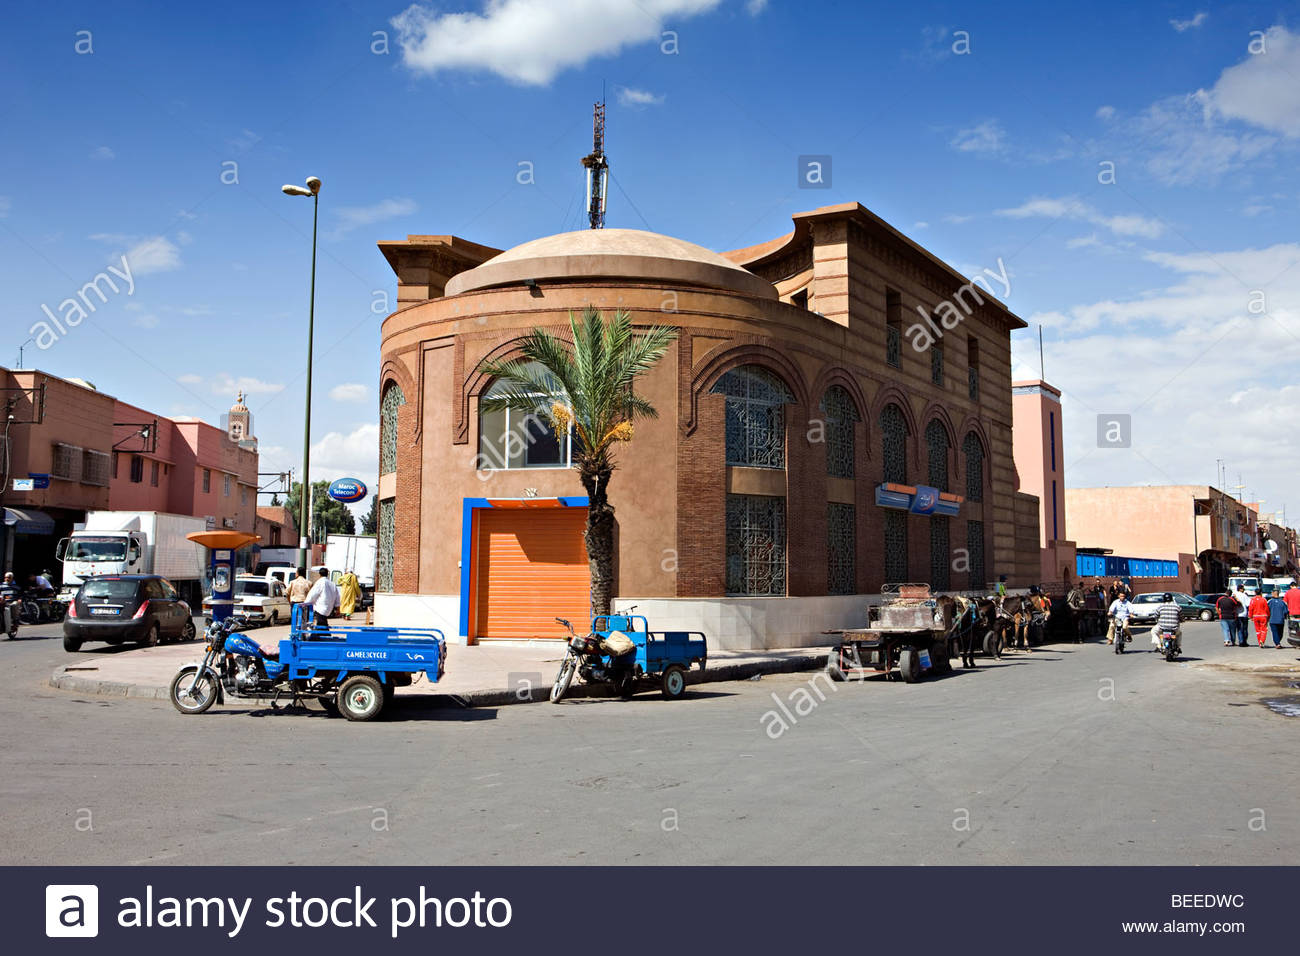 Marrakech street with tricycles and donkey carts - Stock Image